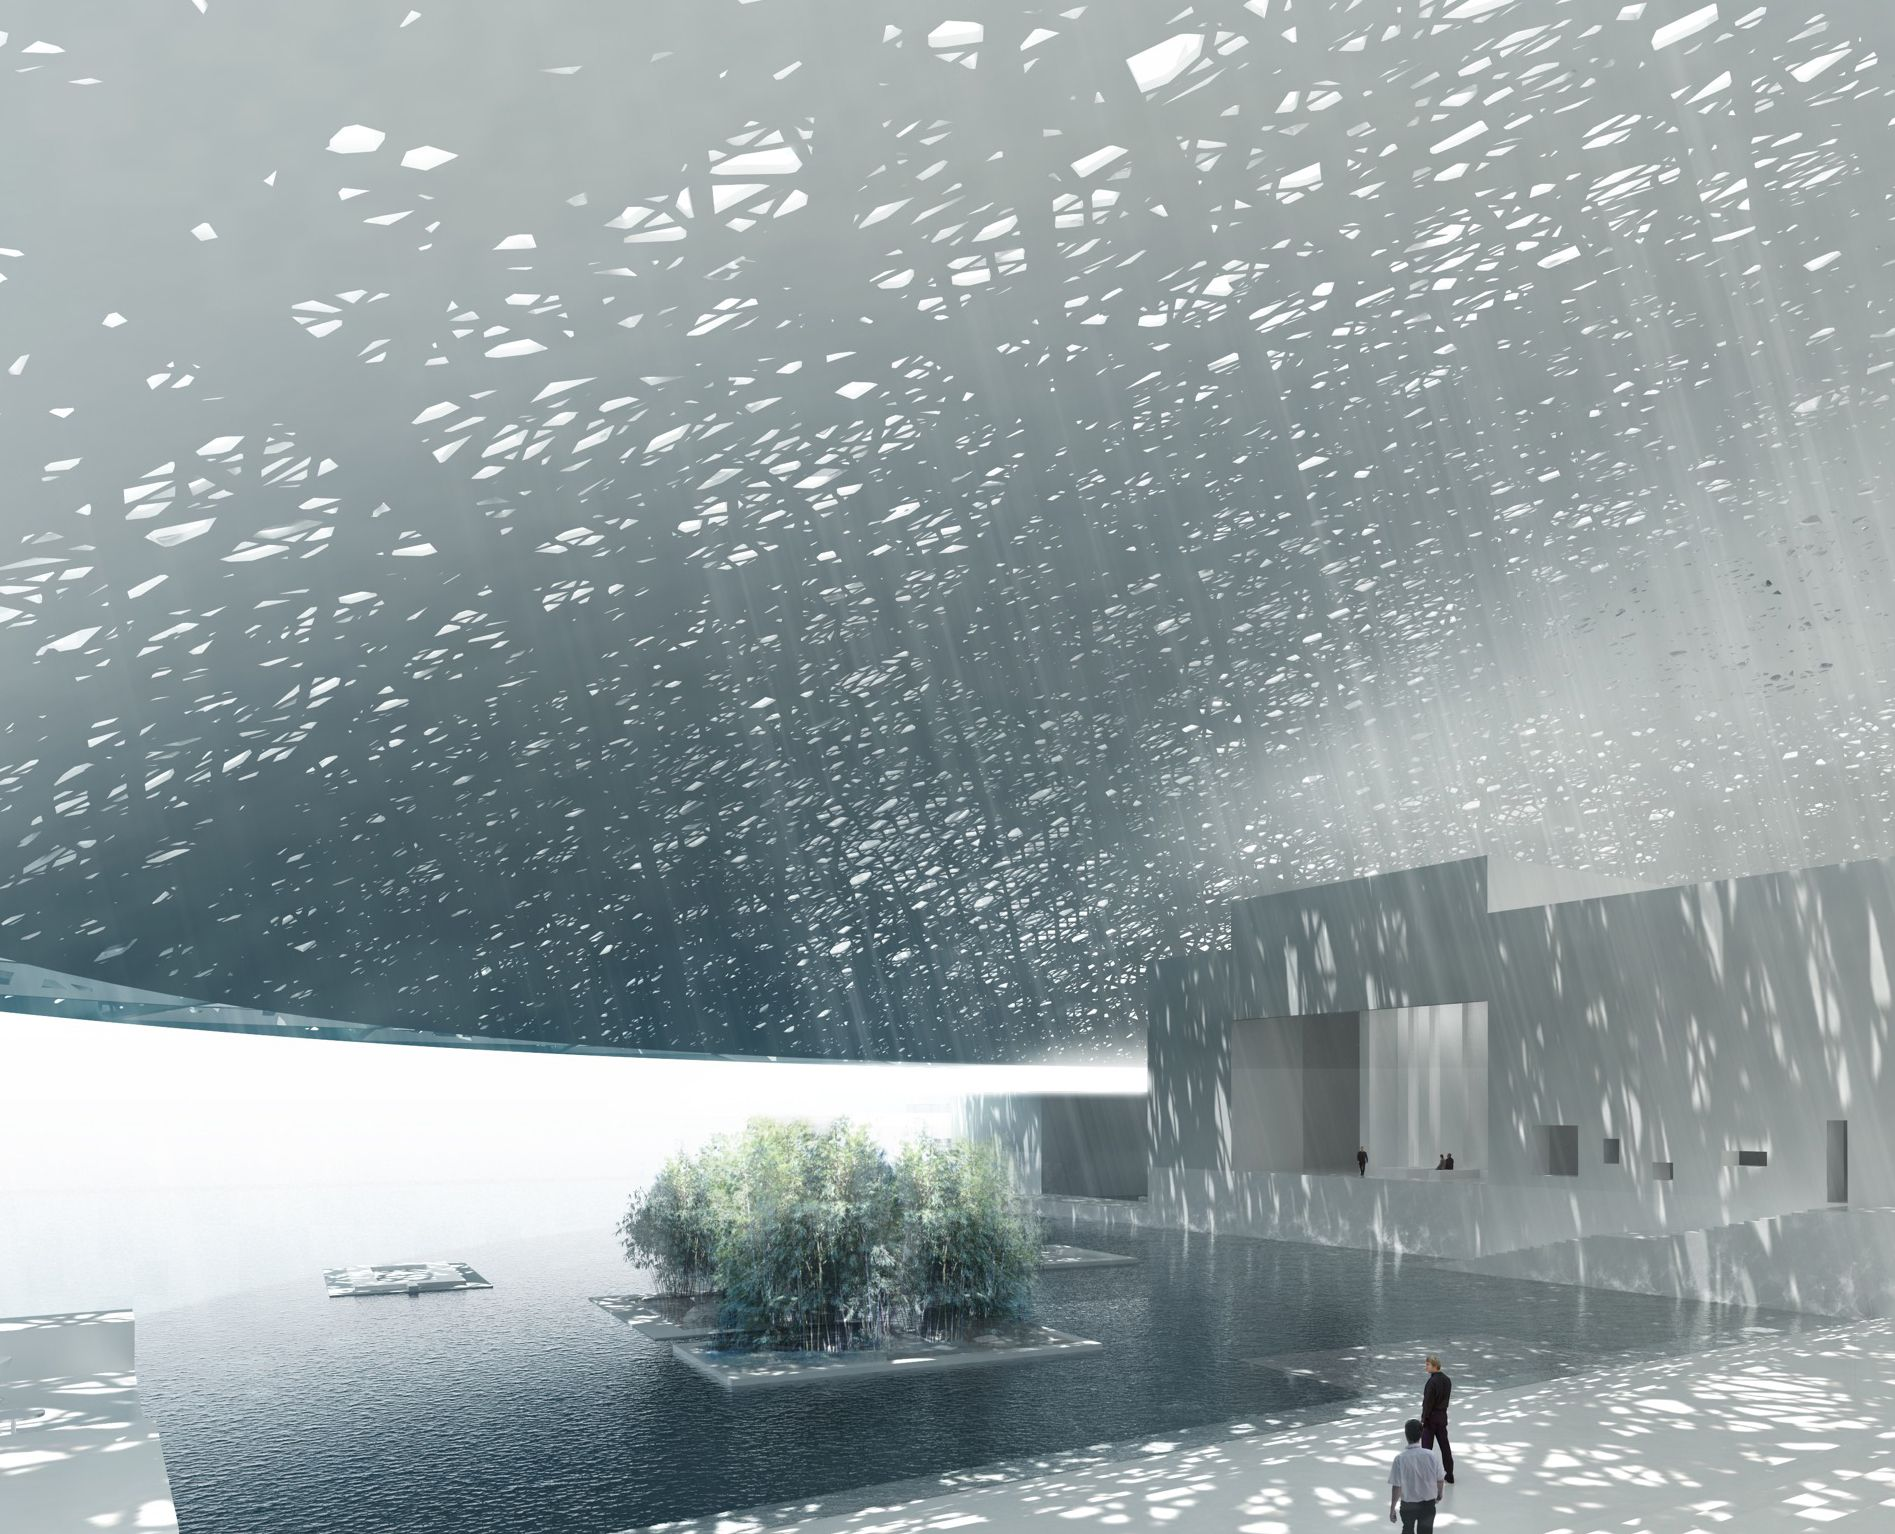 Louvre Abu Dhabi, Abu Dhabi, UAE. Image: Courtesy Atelier Jean Nouvel, Artefactory, Louvre Abu Dhabi, © TDIC.  Find out more: http://bit.ly/1Hpmeol